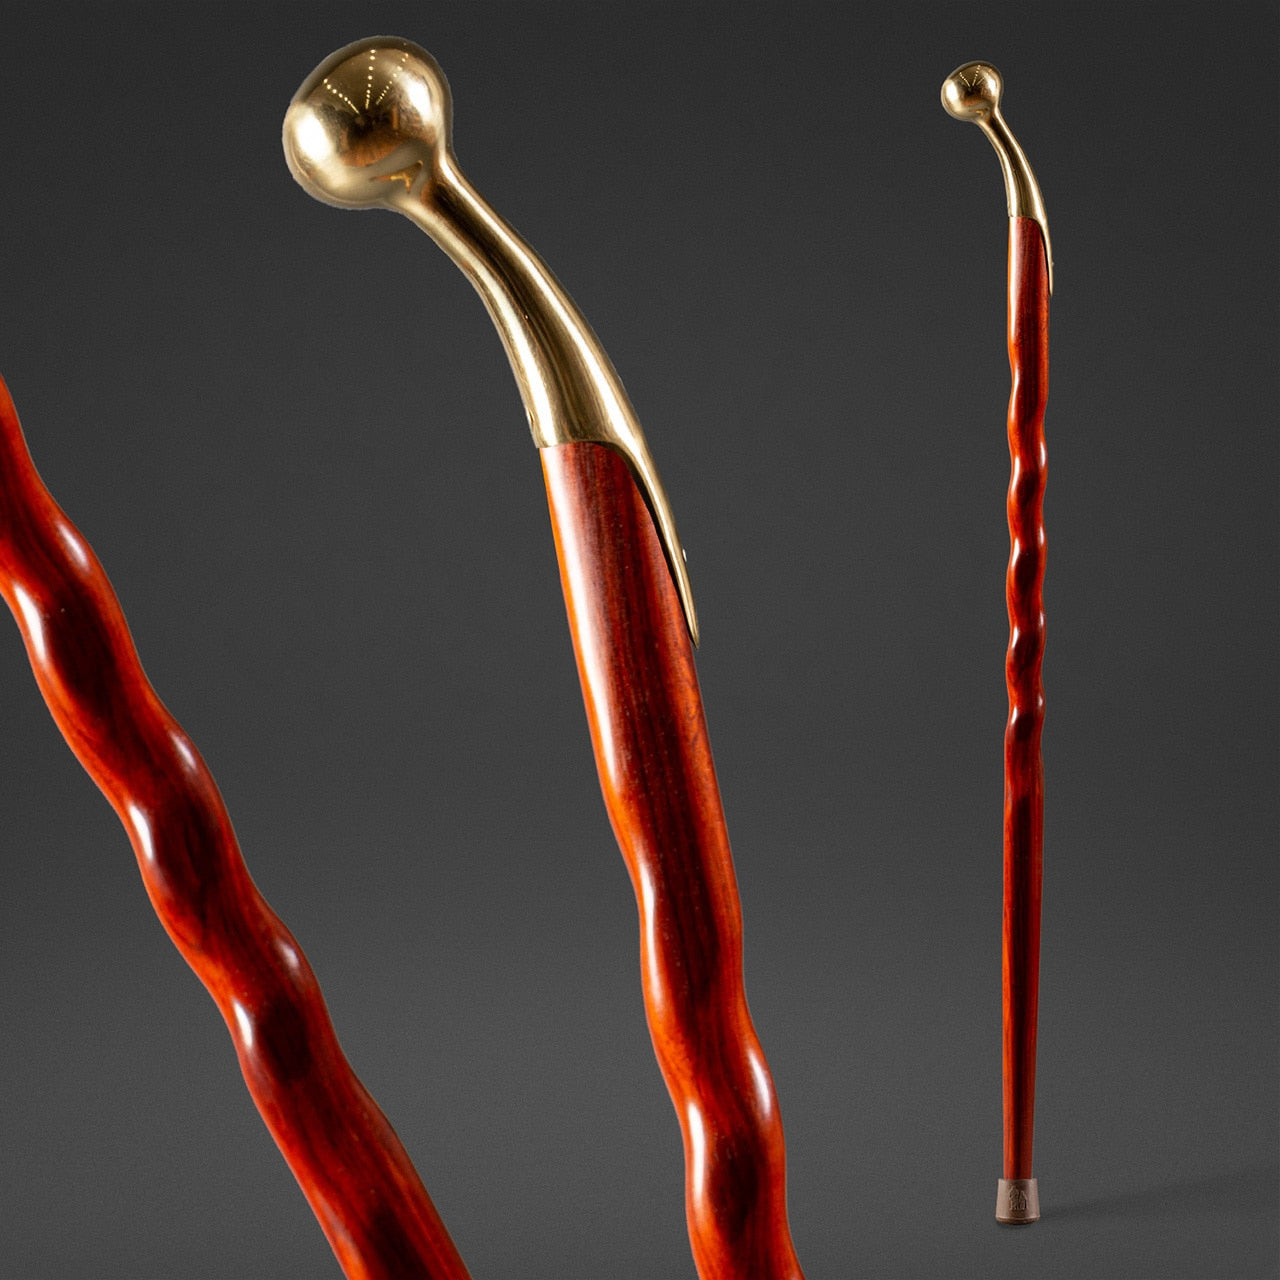 Twisted Cocobolo Hame Top Walking Cane